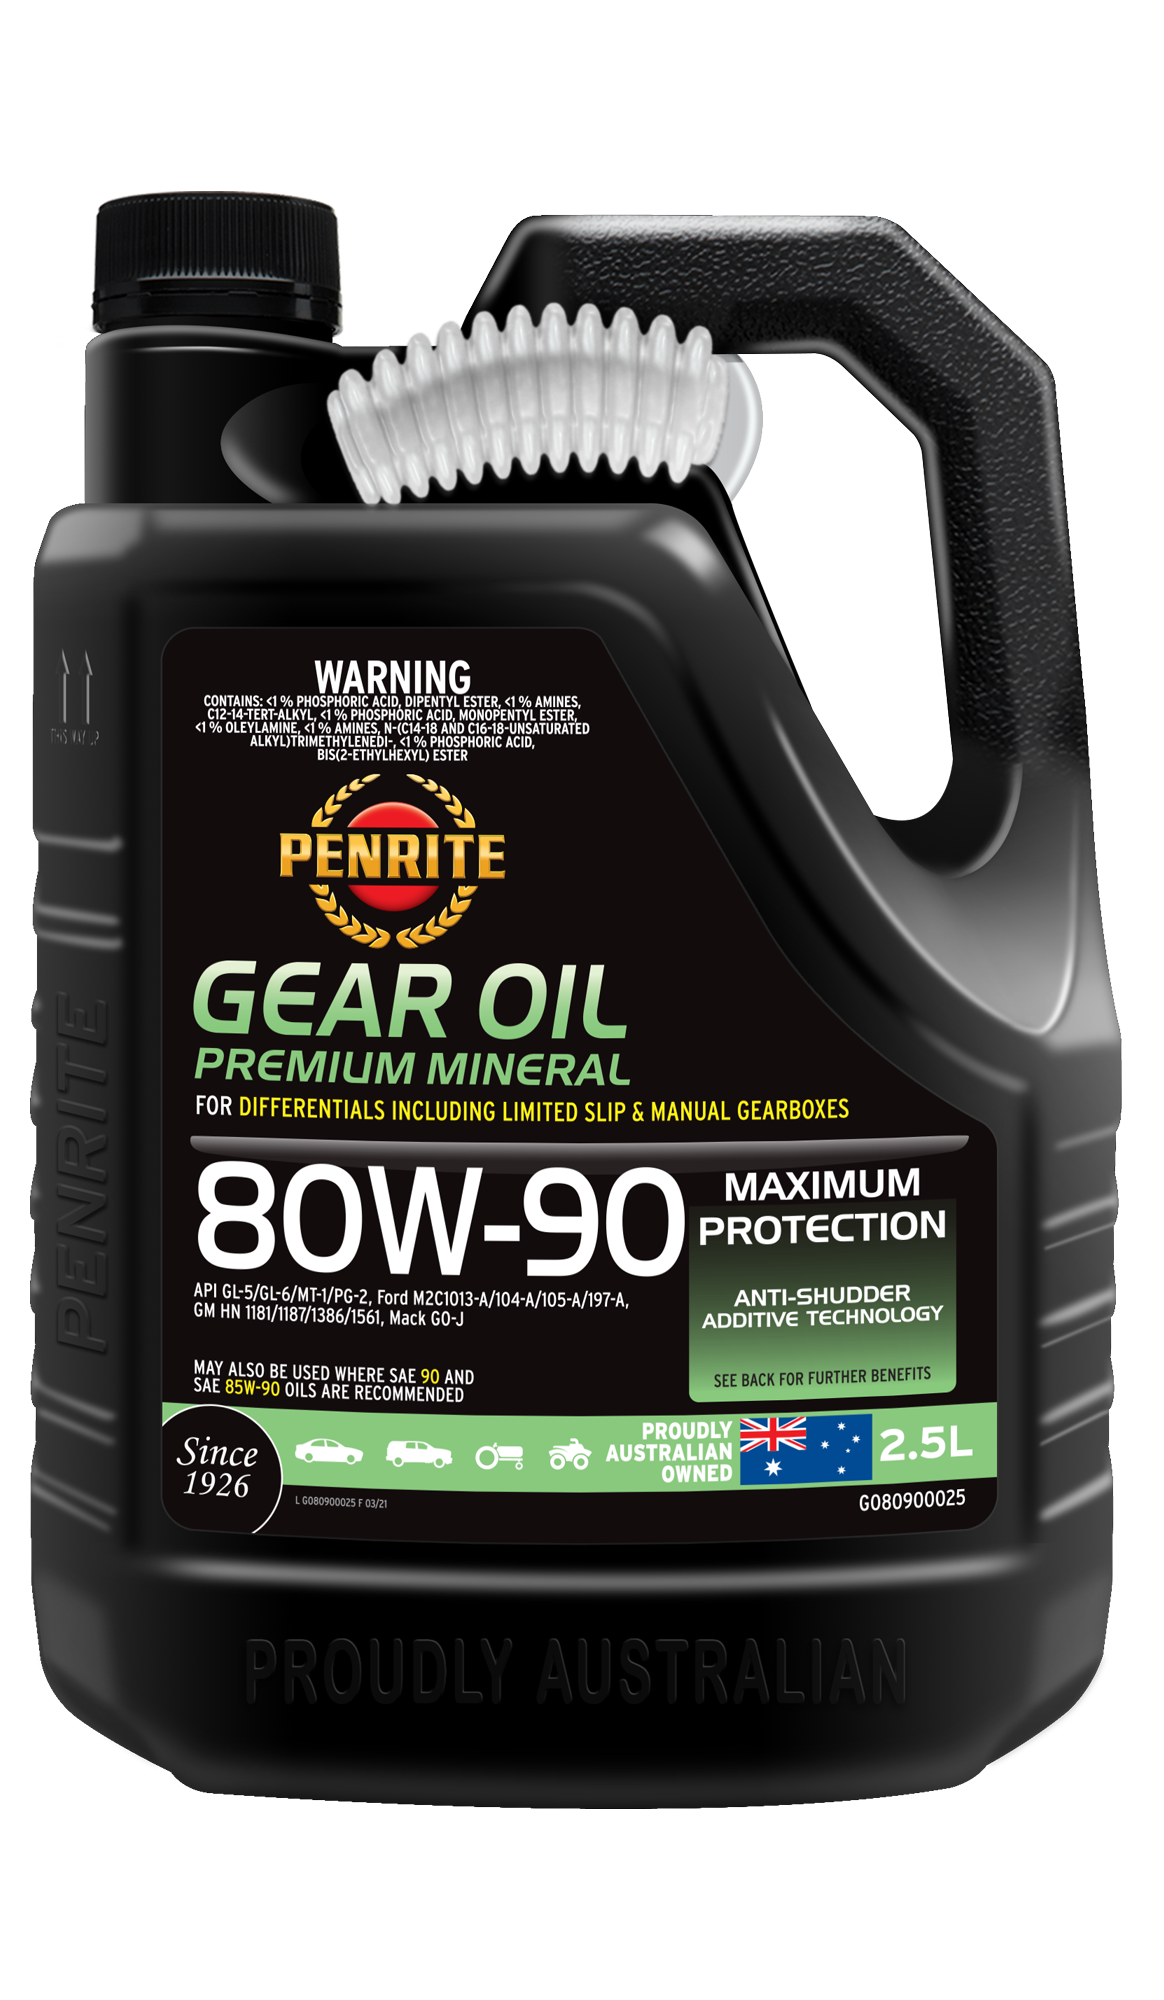 GEAR OIL 80W-90 (Mineral) | Penrite Oil